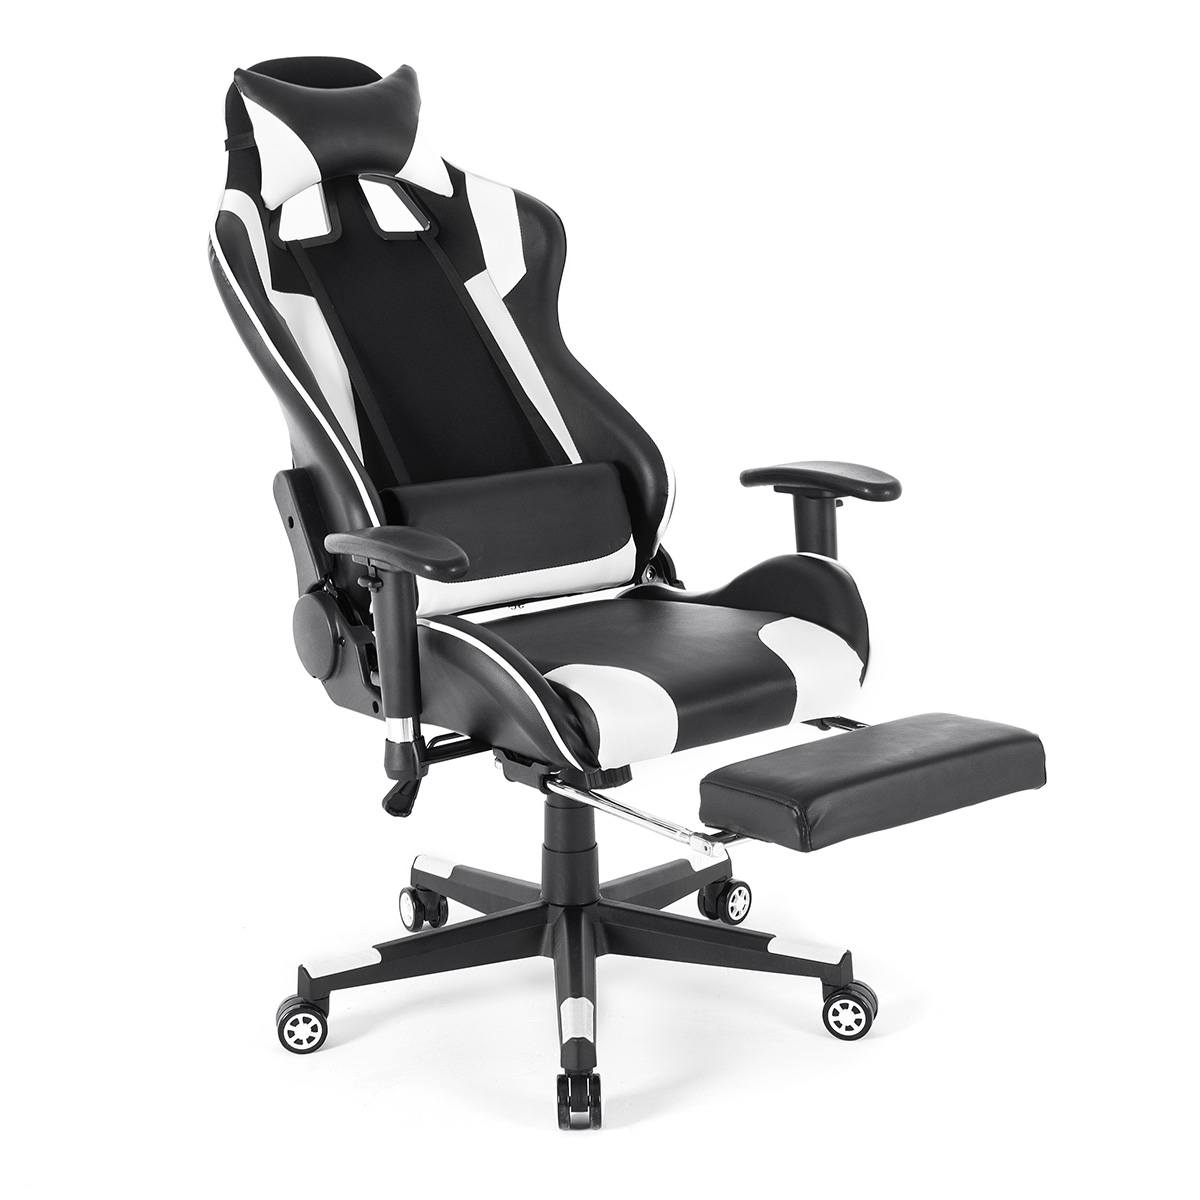 Stylish Gaming Chair High Back Racing Recliner Office Chair with Headrest  Pillow and Lumbar Support Cushion - Walmart.com